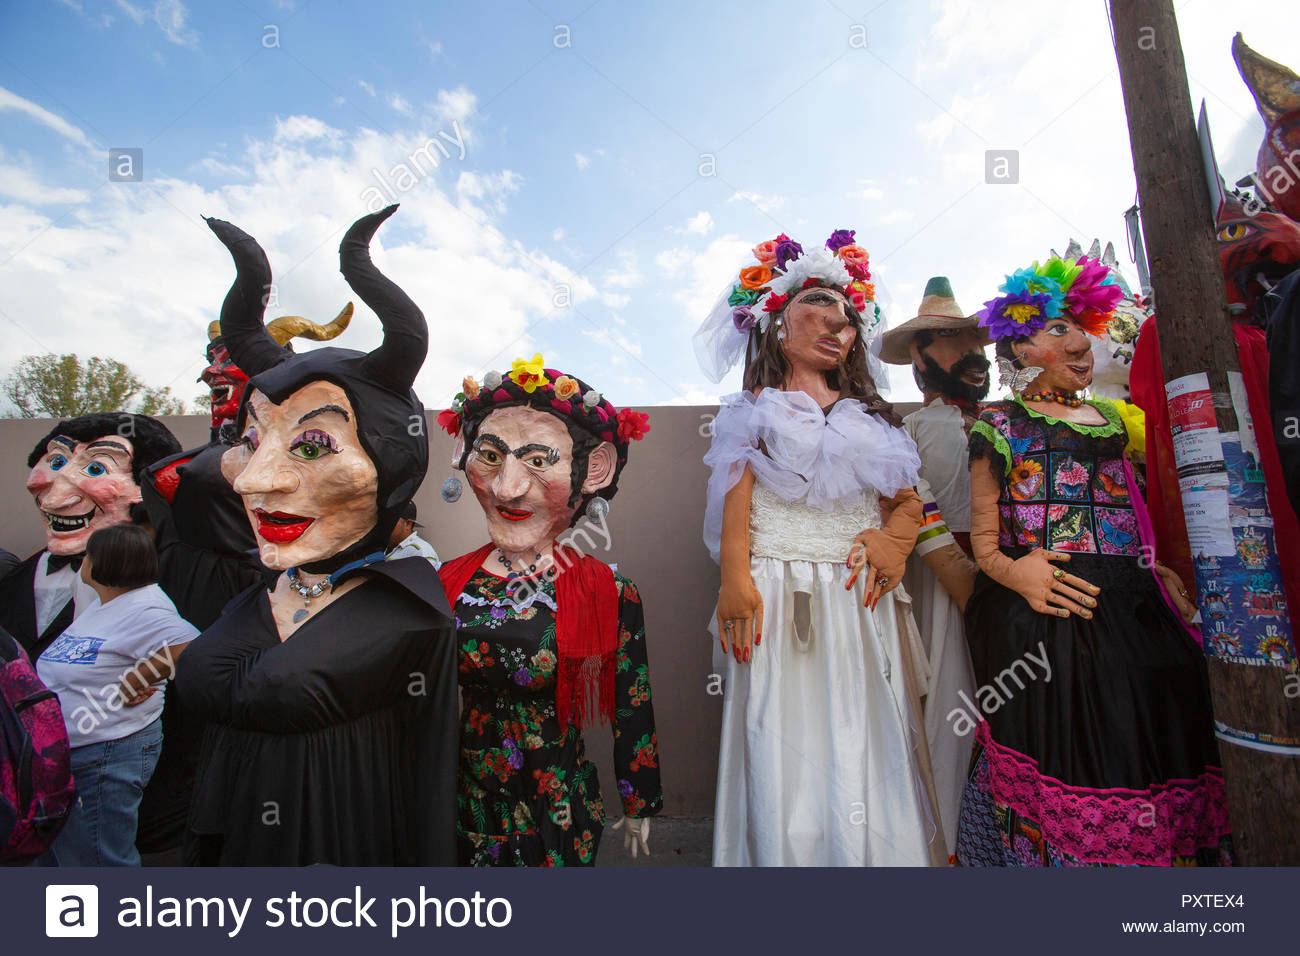 Mojigangas, giant puppets, at an annual parade - Stock Image